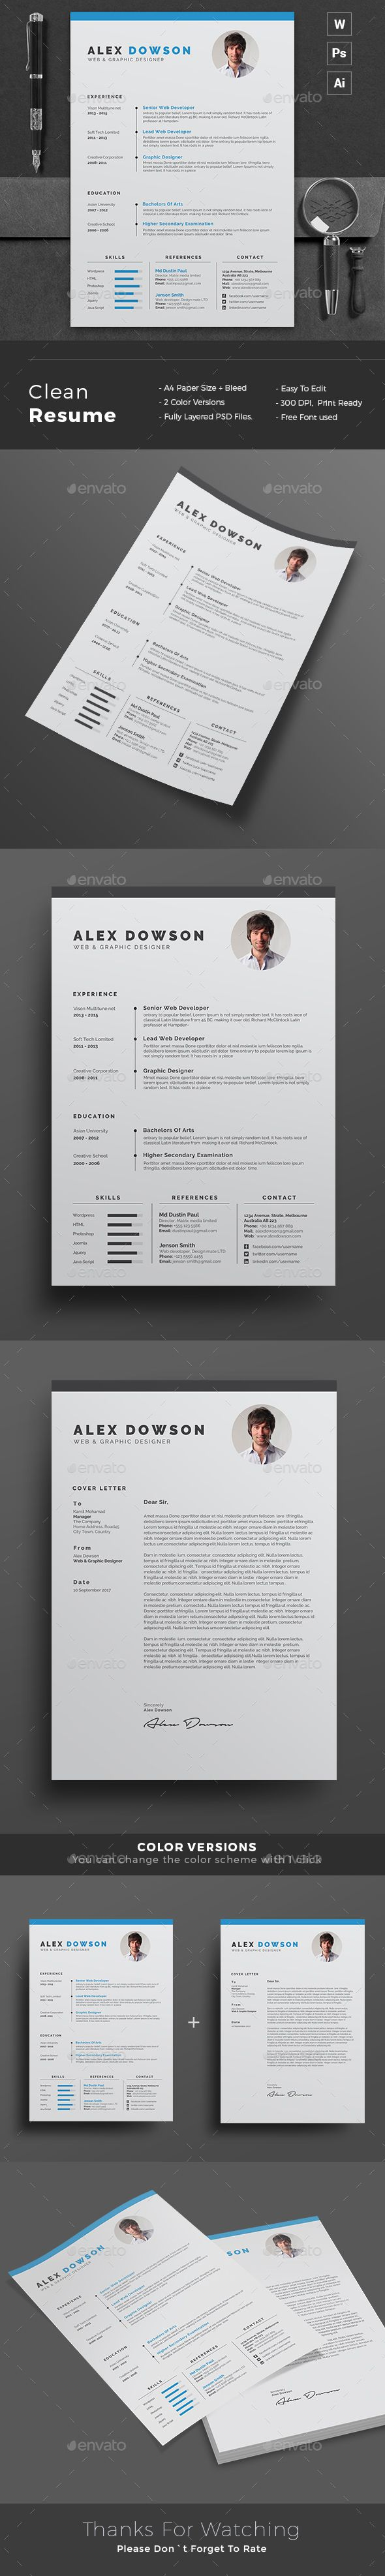 Resume Readwritethink Resume Generator read write think resume resume ...